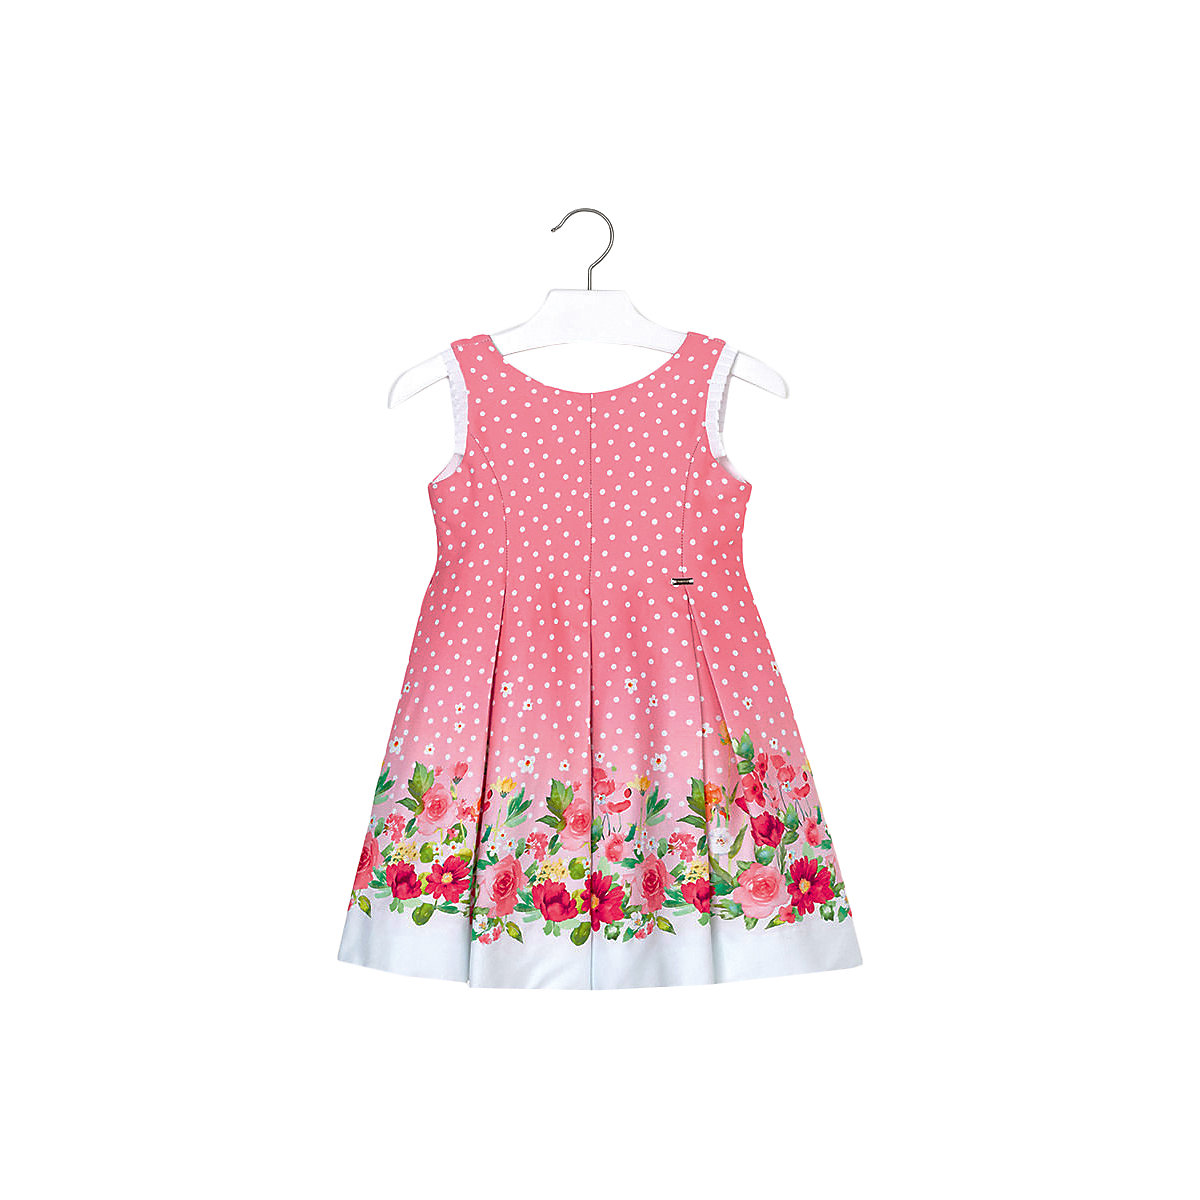 Фото - MAYORAL Dresses 10682326 Girl Children fitted pleated skirt Pink Cotton Casual Floral Knee-Length Sleeveless Sleeve new long communion dresses appliques crew neck sleeveless ball gown back v button flower girl dresses for wedding with bow sash